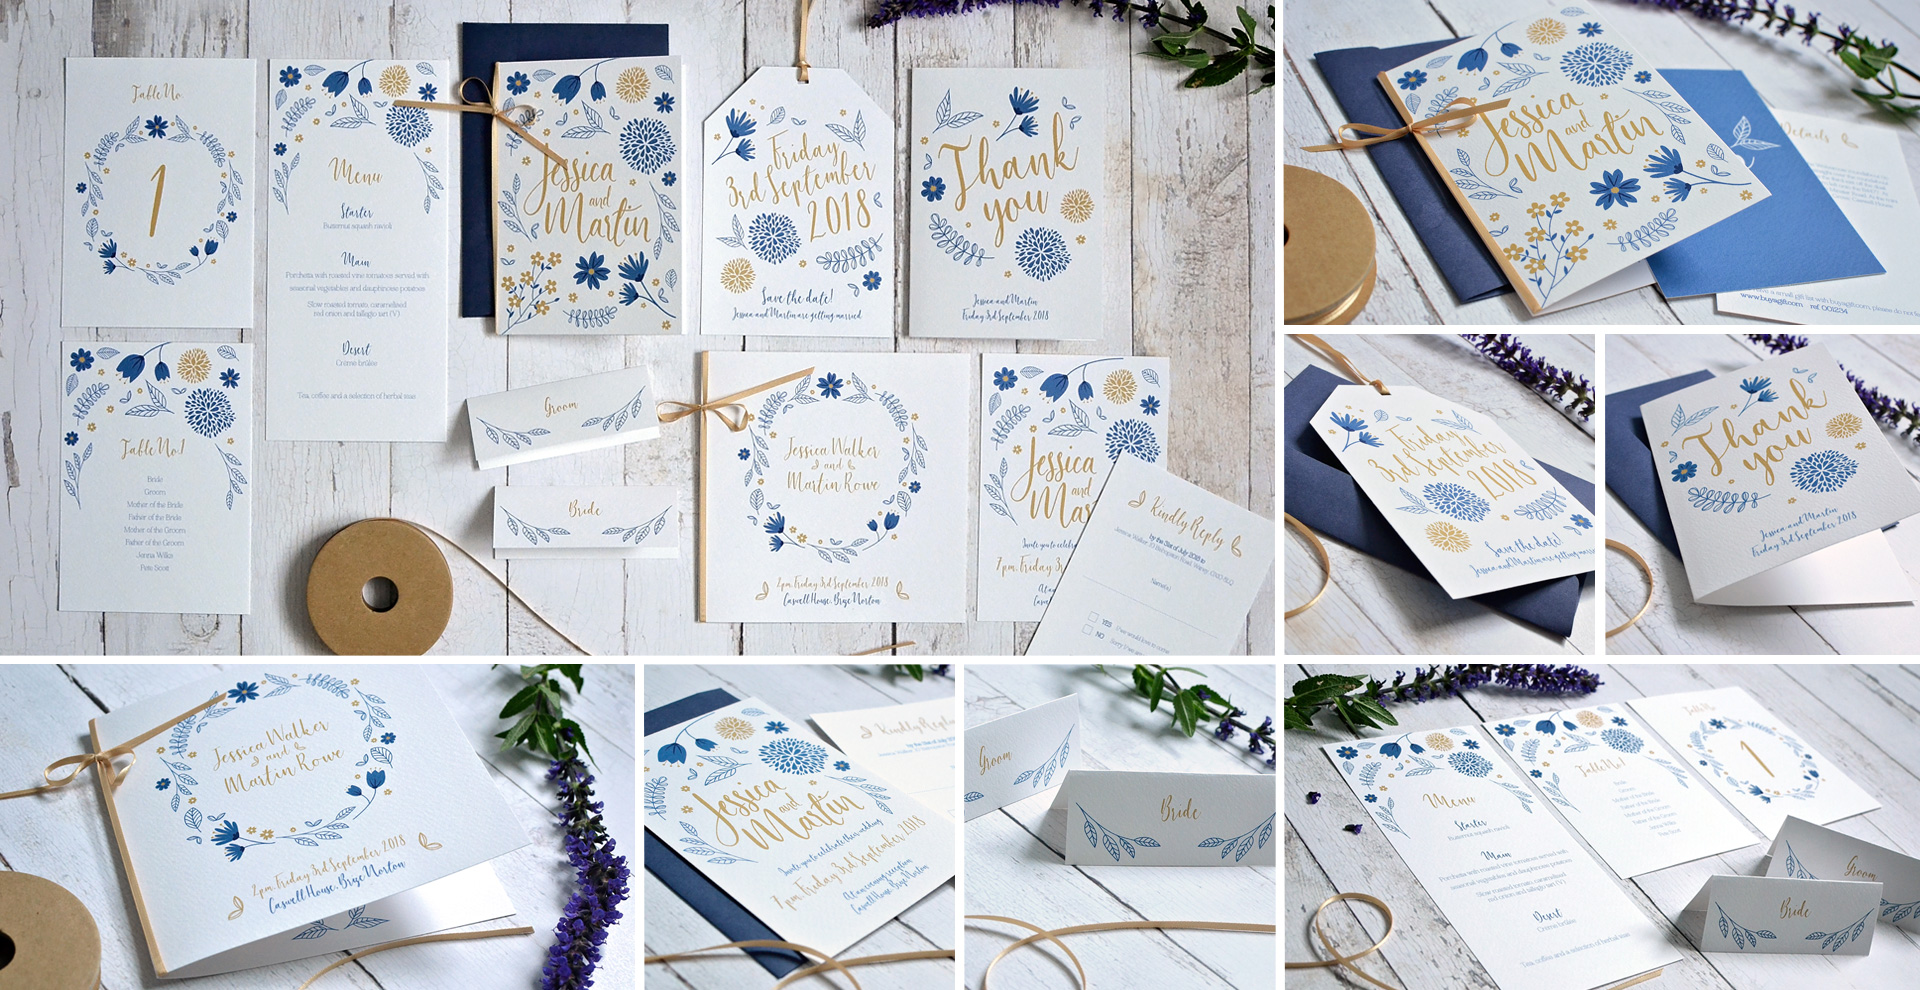 Pretty floral wedding invitation and stationery